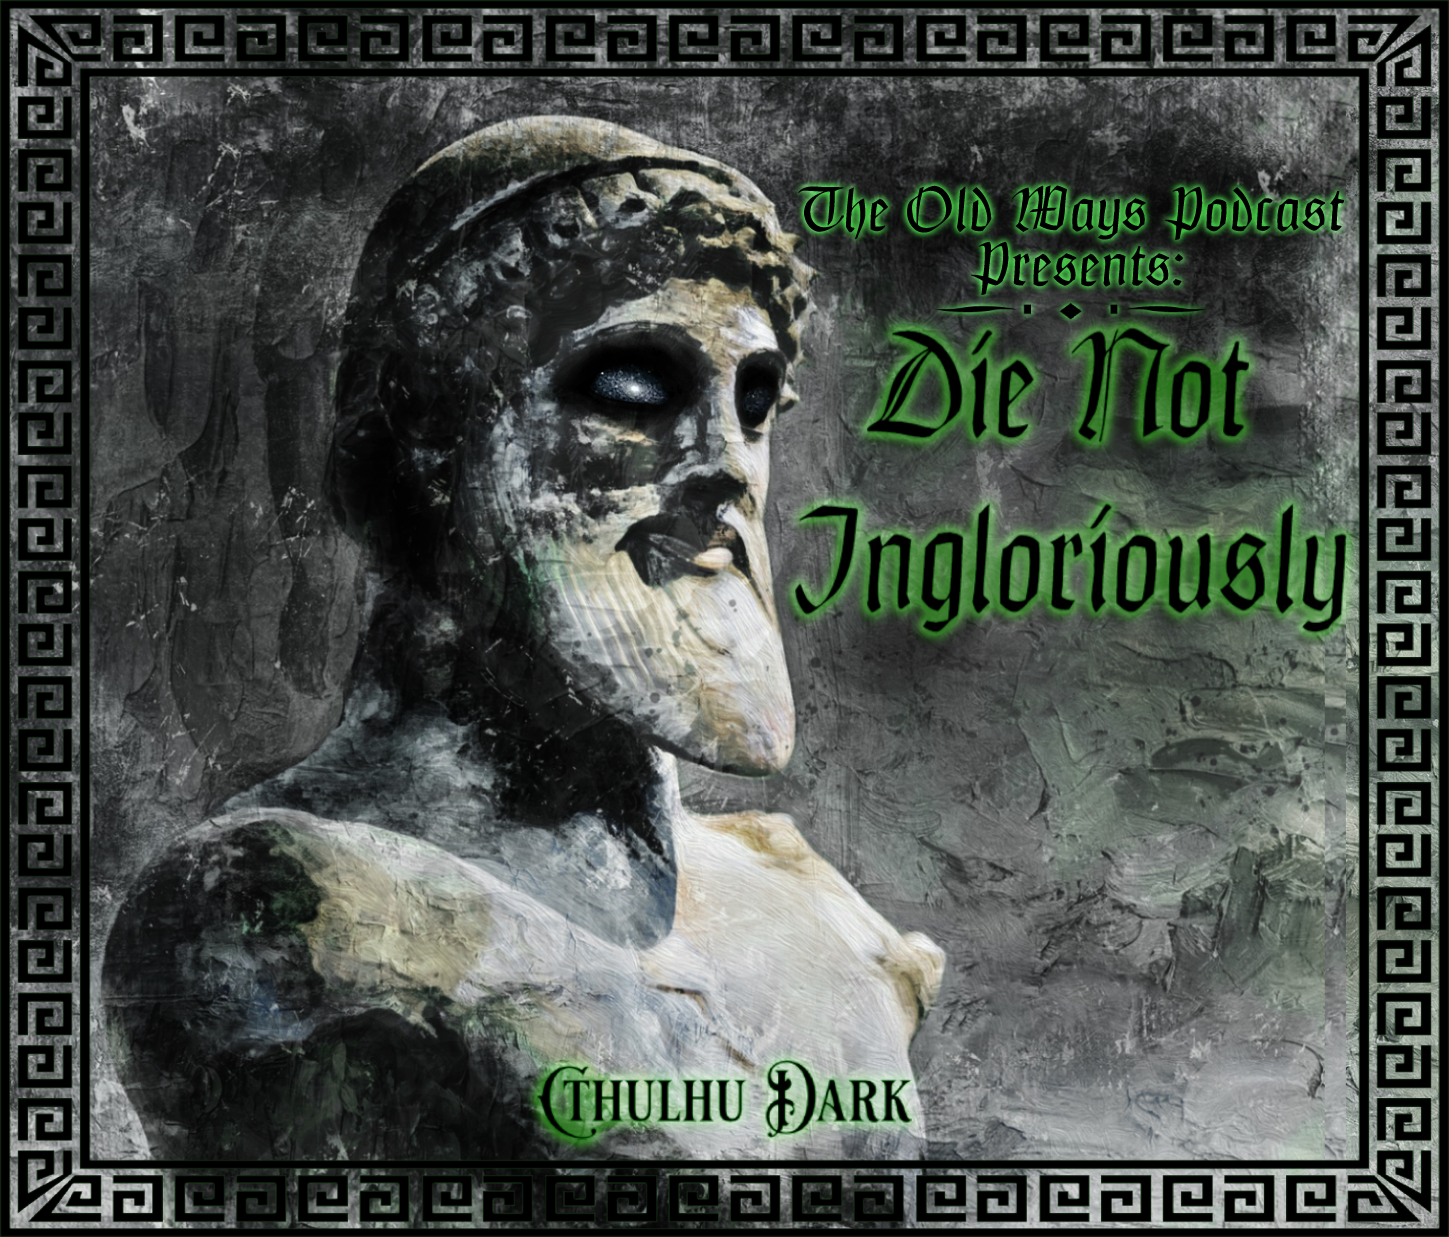 The Old Ways Podcast - Cthulhu Dark - Die Not Ingloriously  show art